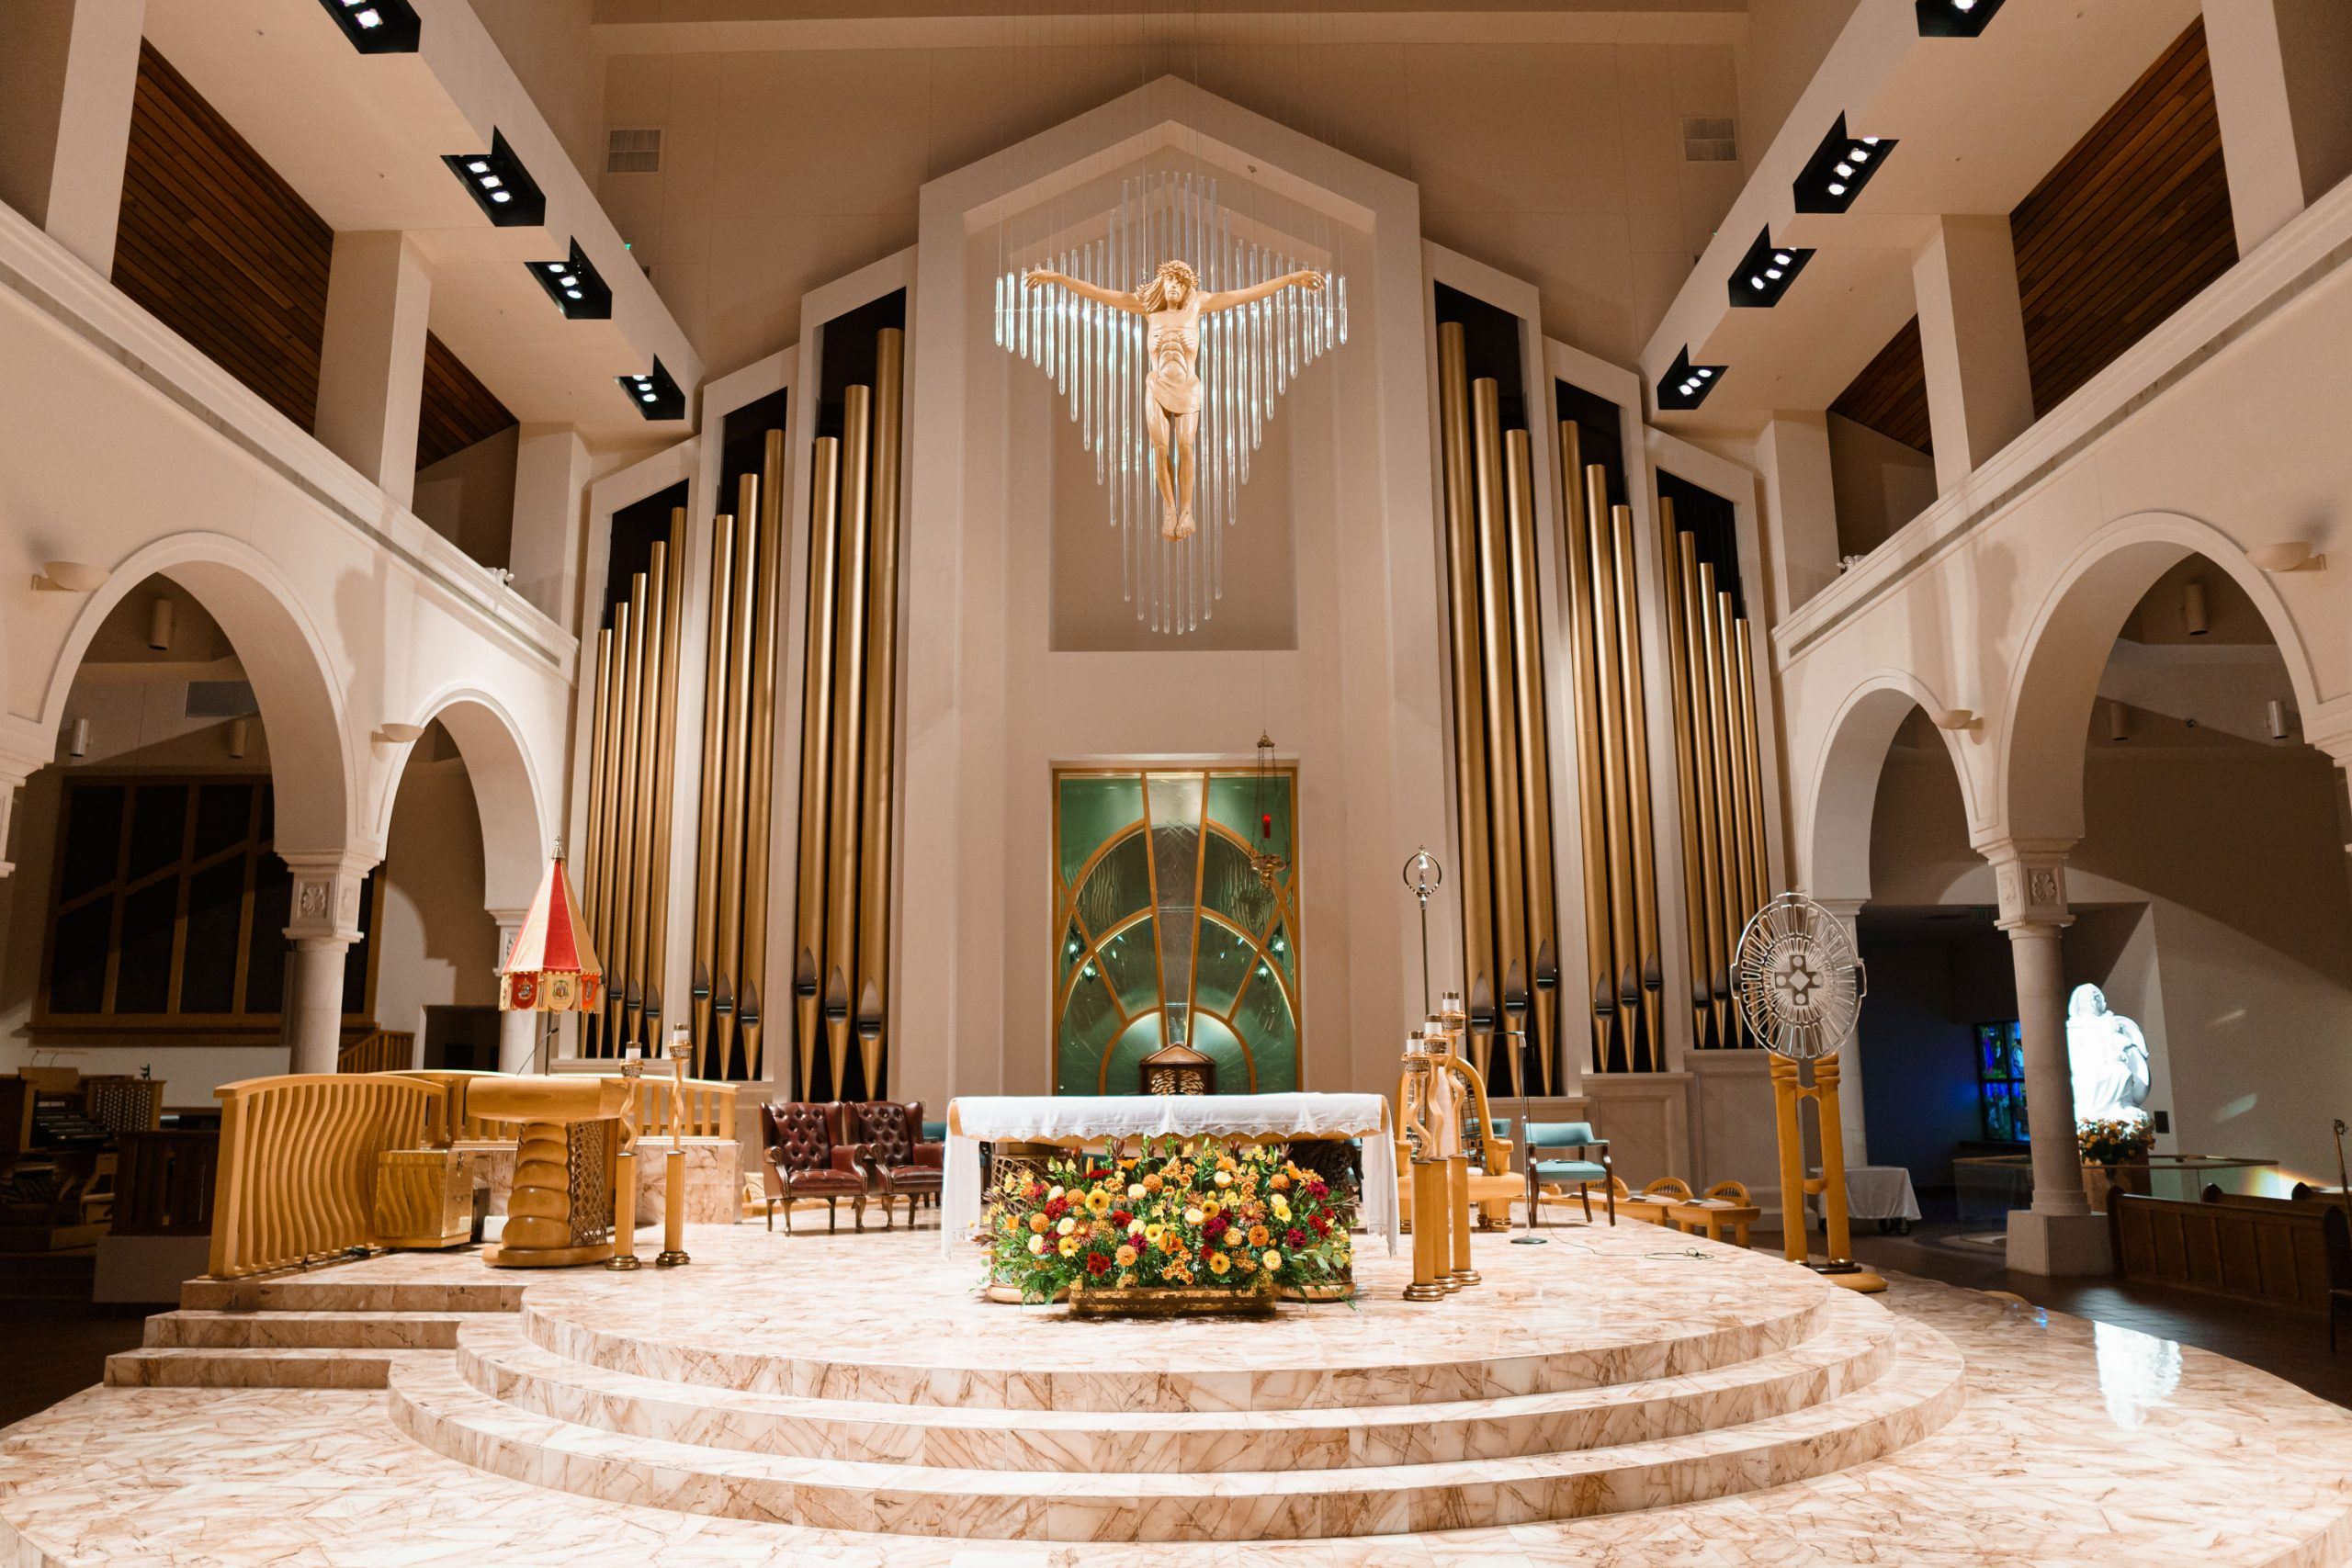 New Schoenstein pipe organ dedicated at basilica